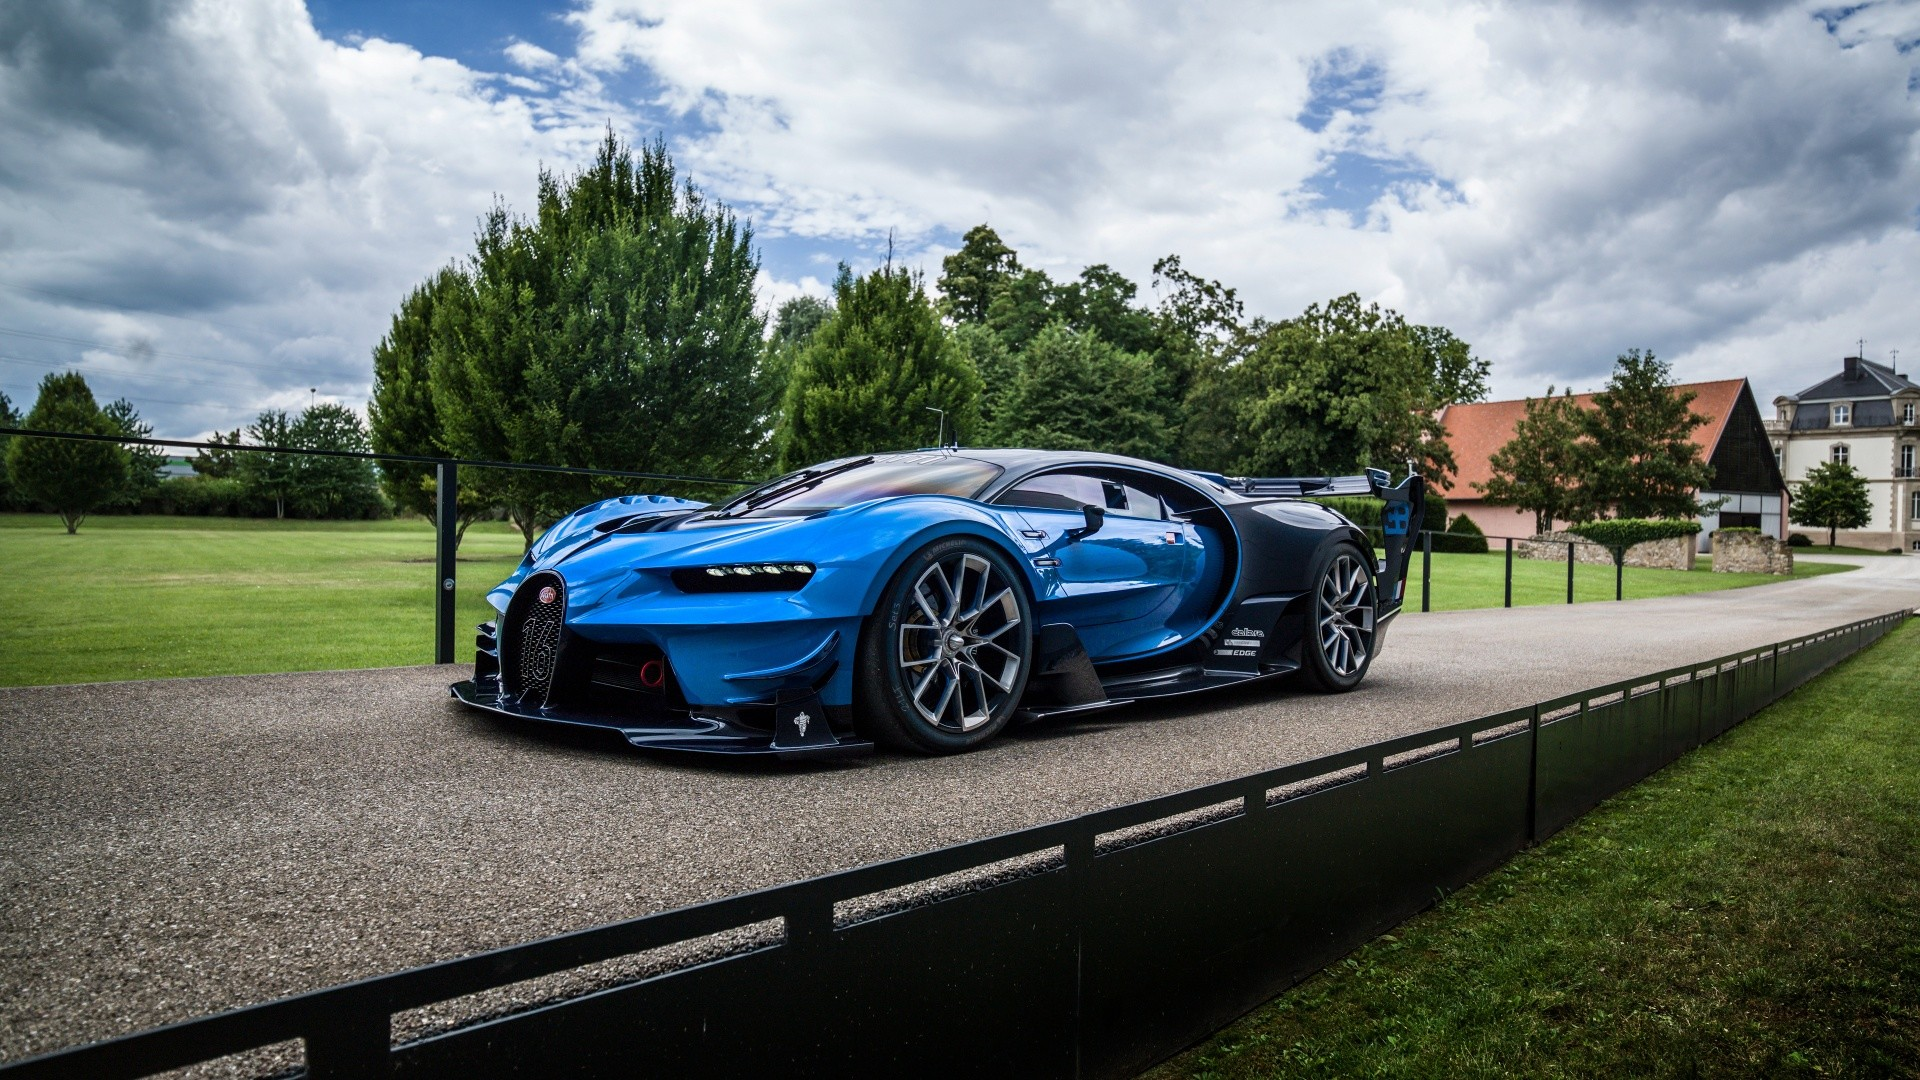 Fastest Car In The World Wallpaper 2018 (84+ Images